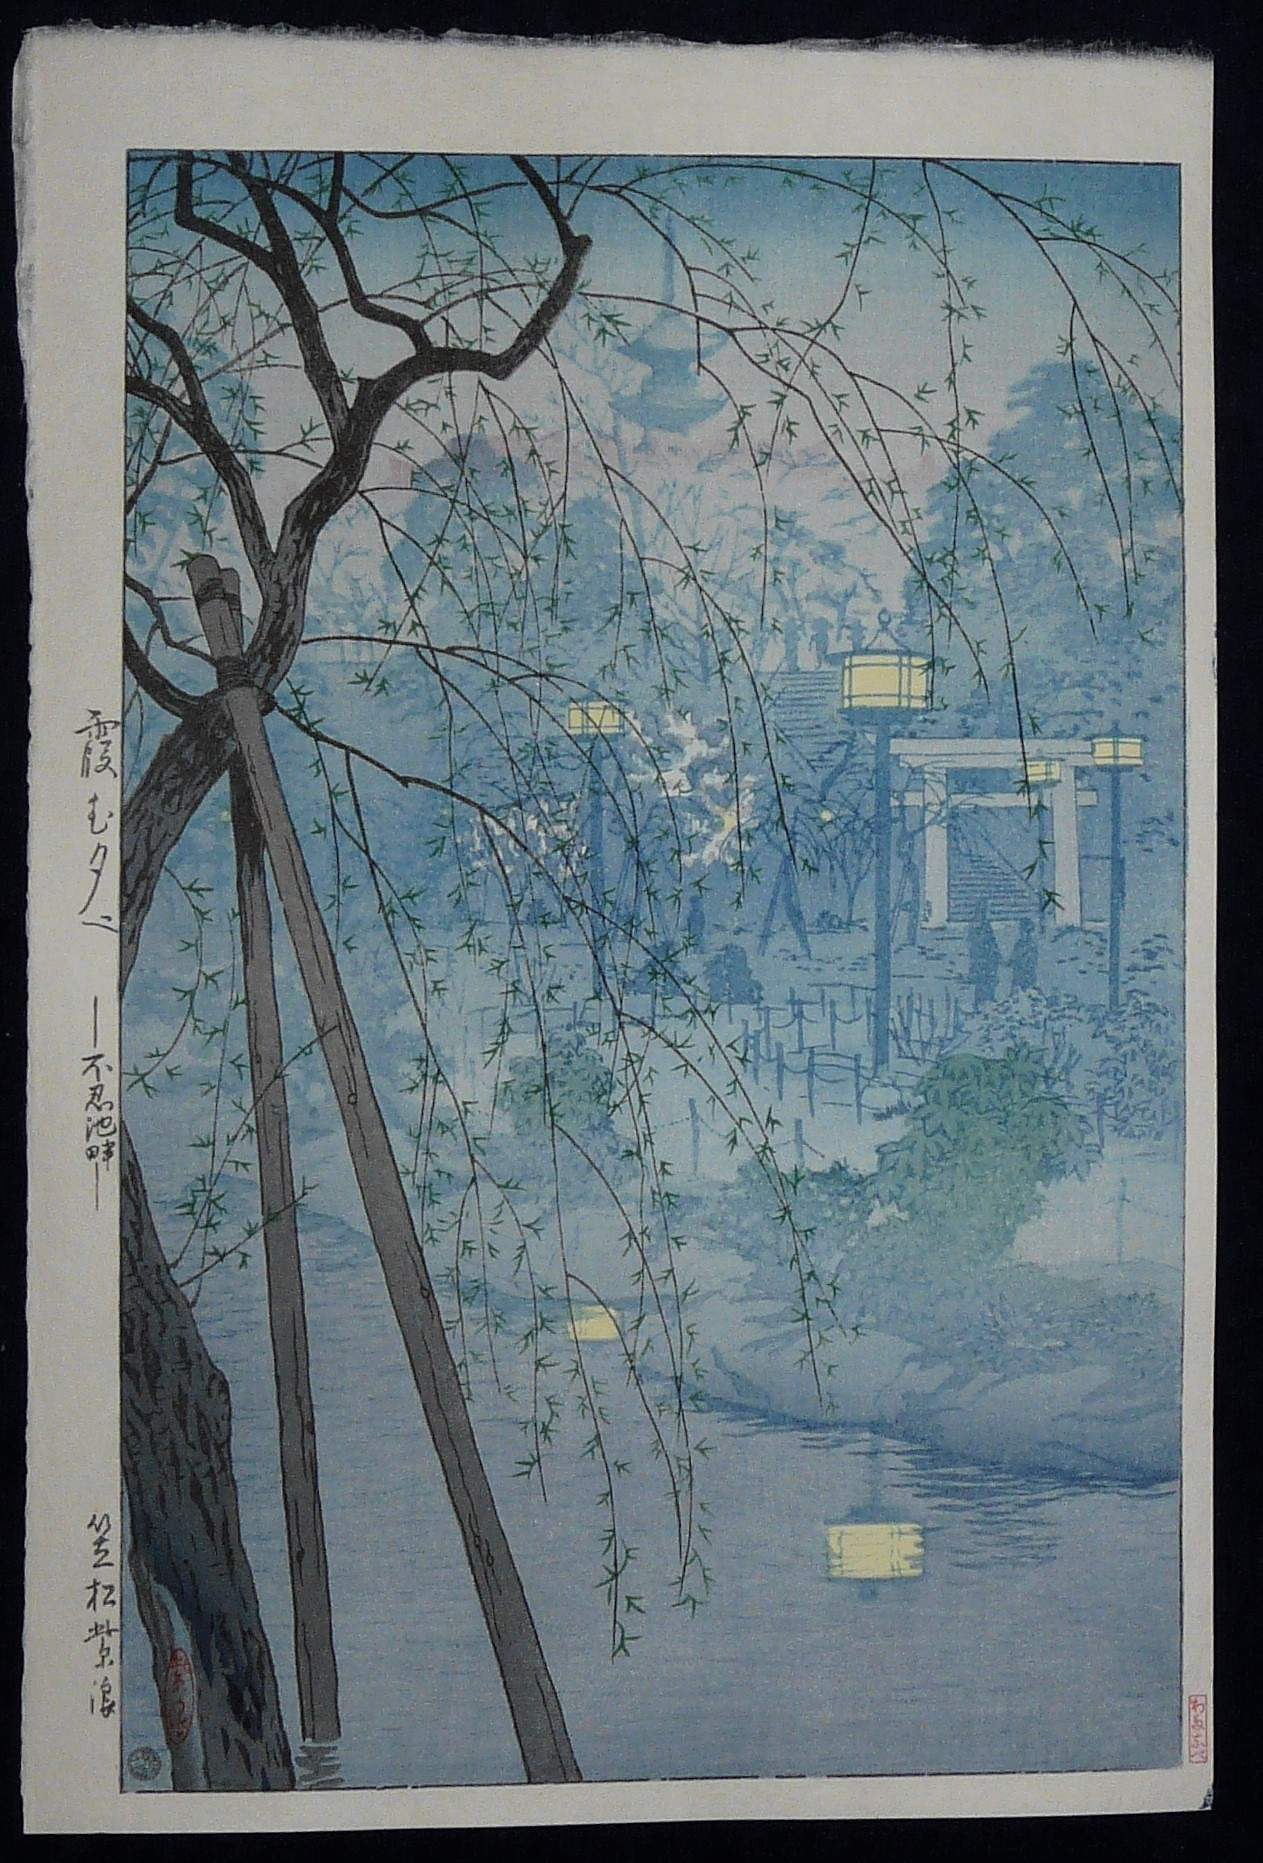 SHIRO KASAMATSU: #P3432 MISTY EVENING AT SHINOBAZU POND